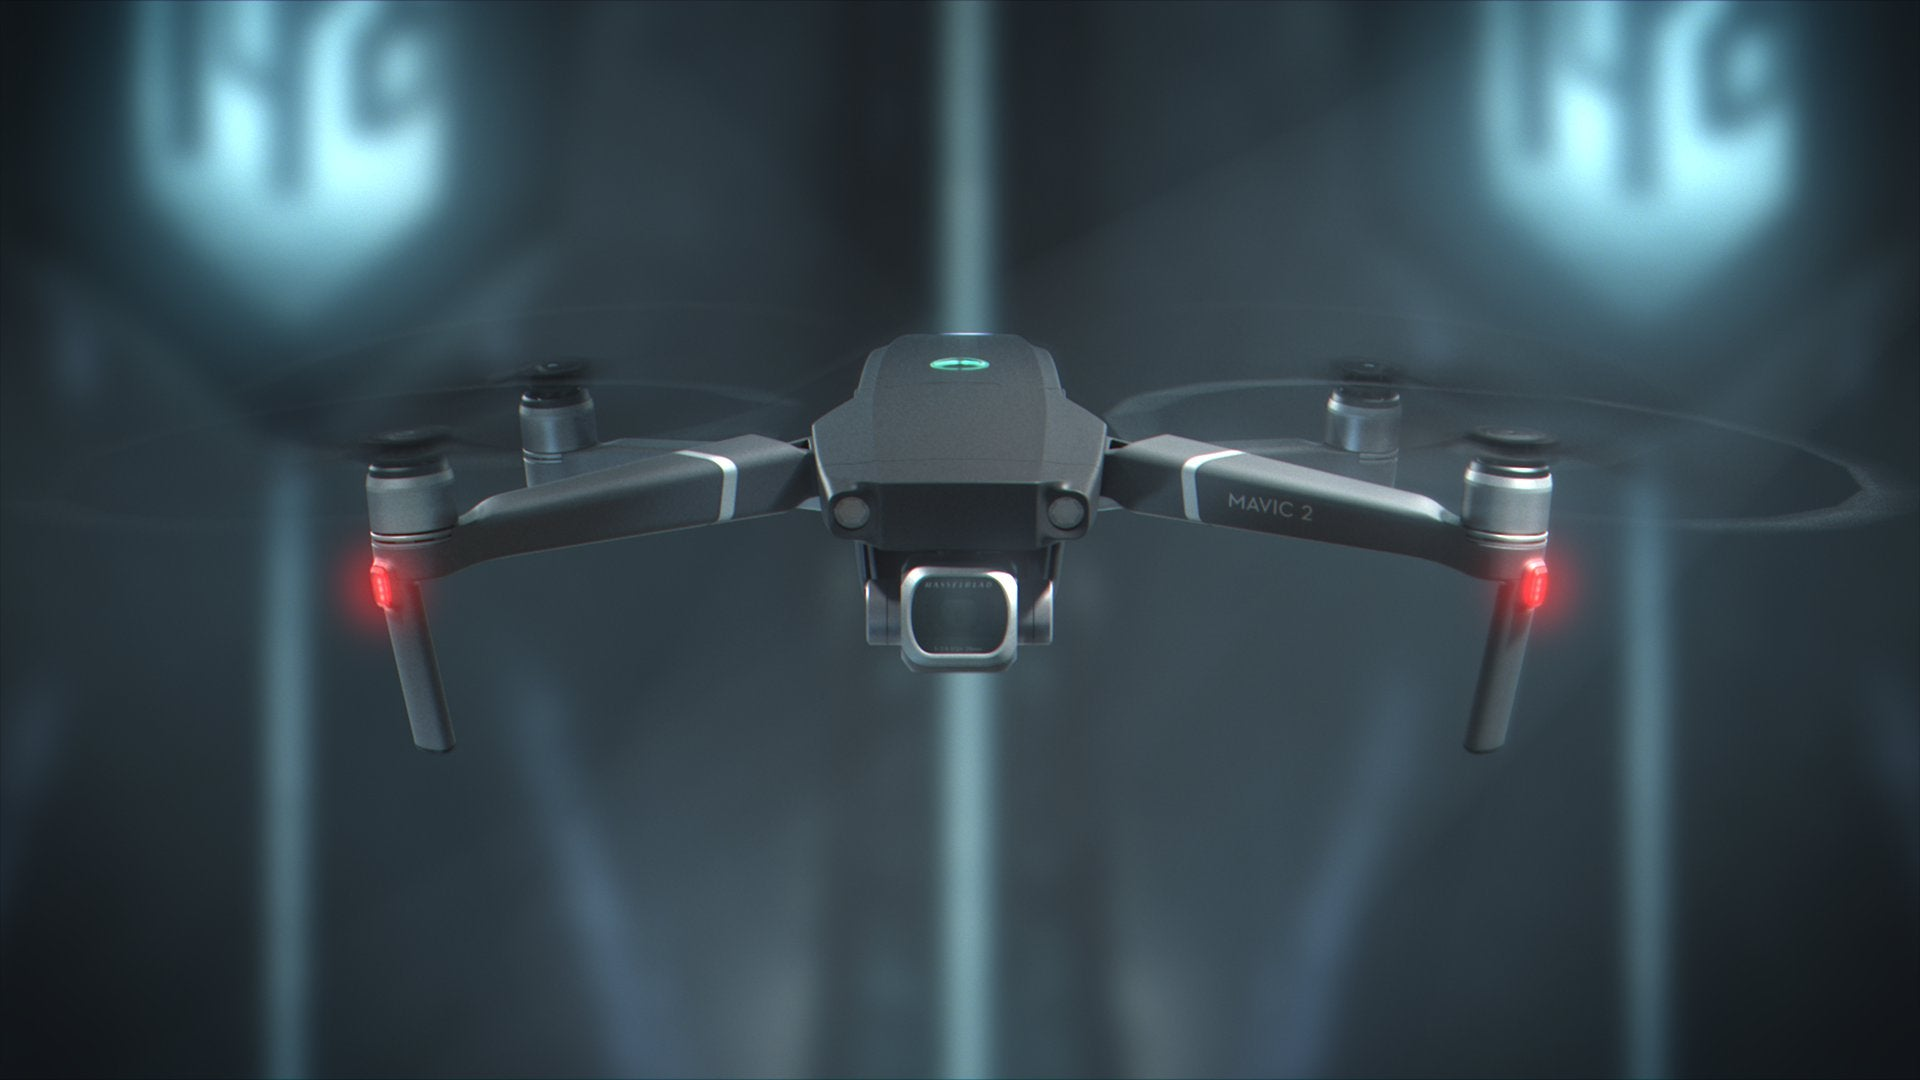 DJI - Mavic 2 - Introducing the Mavic 2